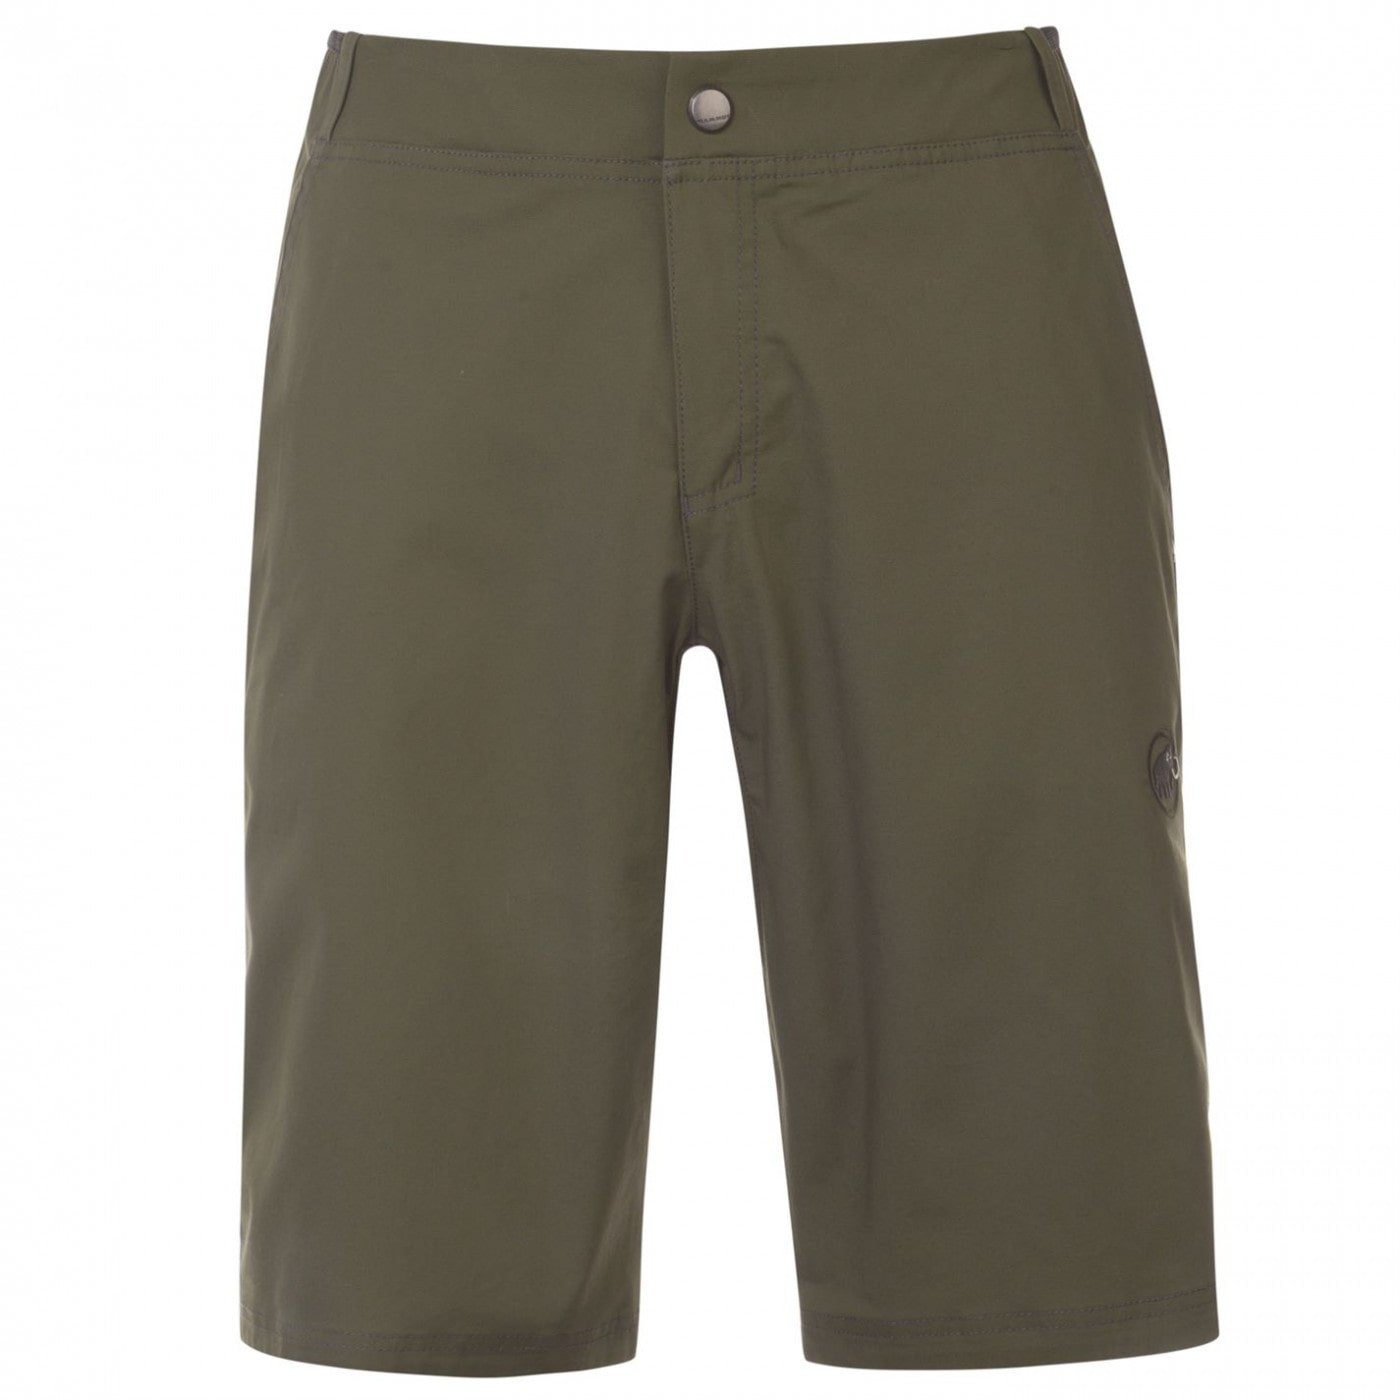 Mammut Alnasca Walking Shorts Mens